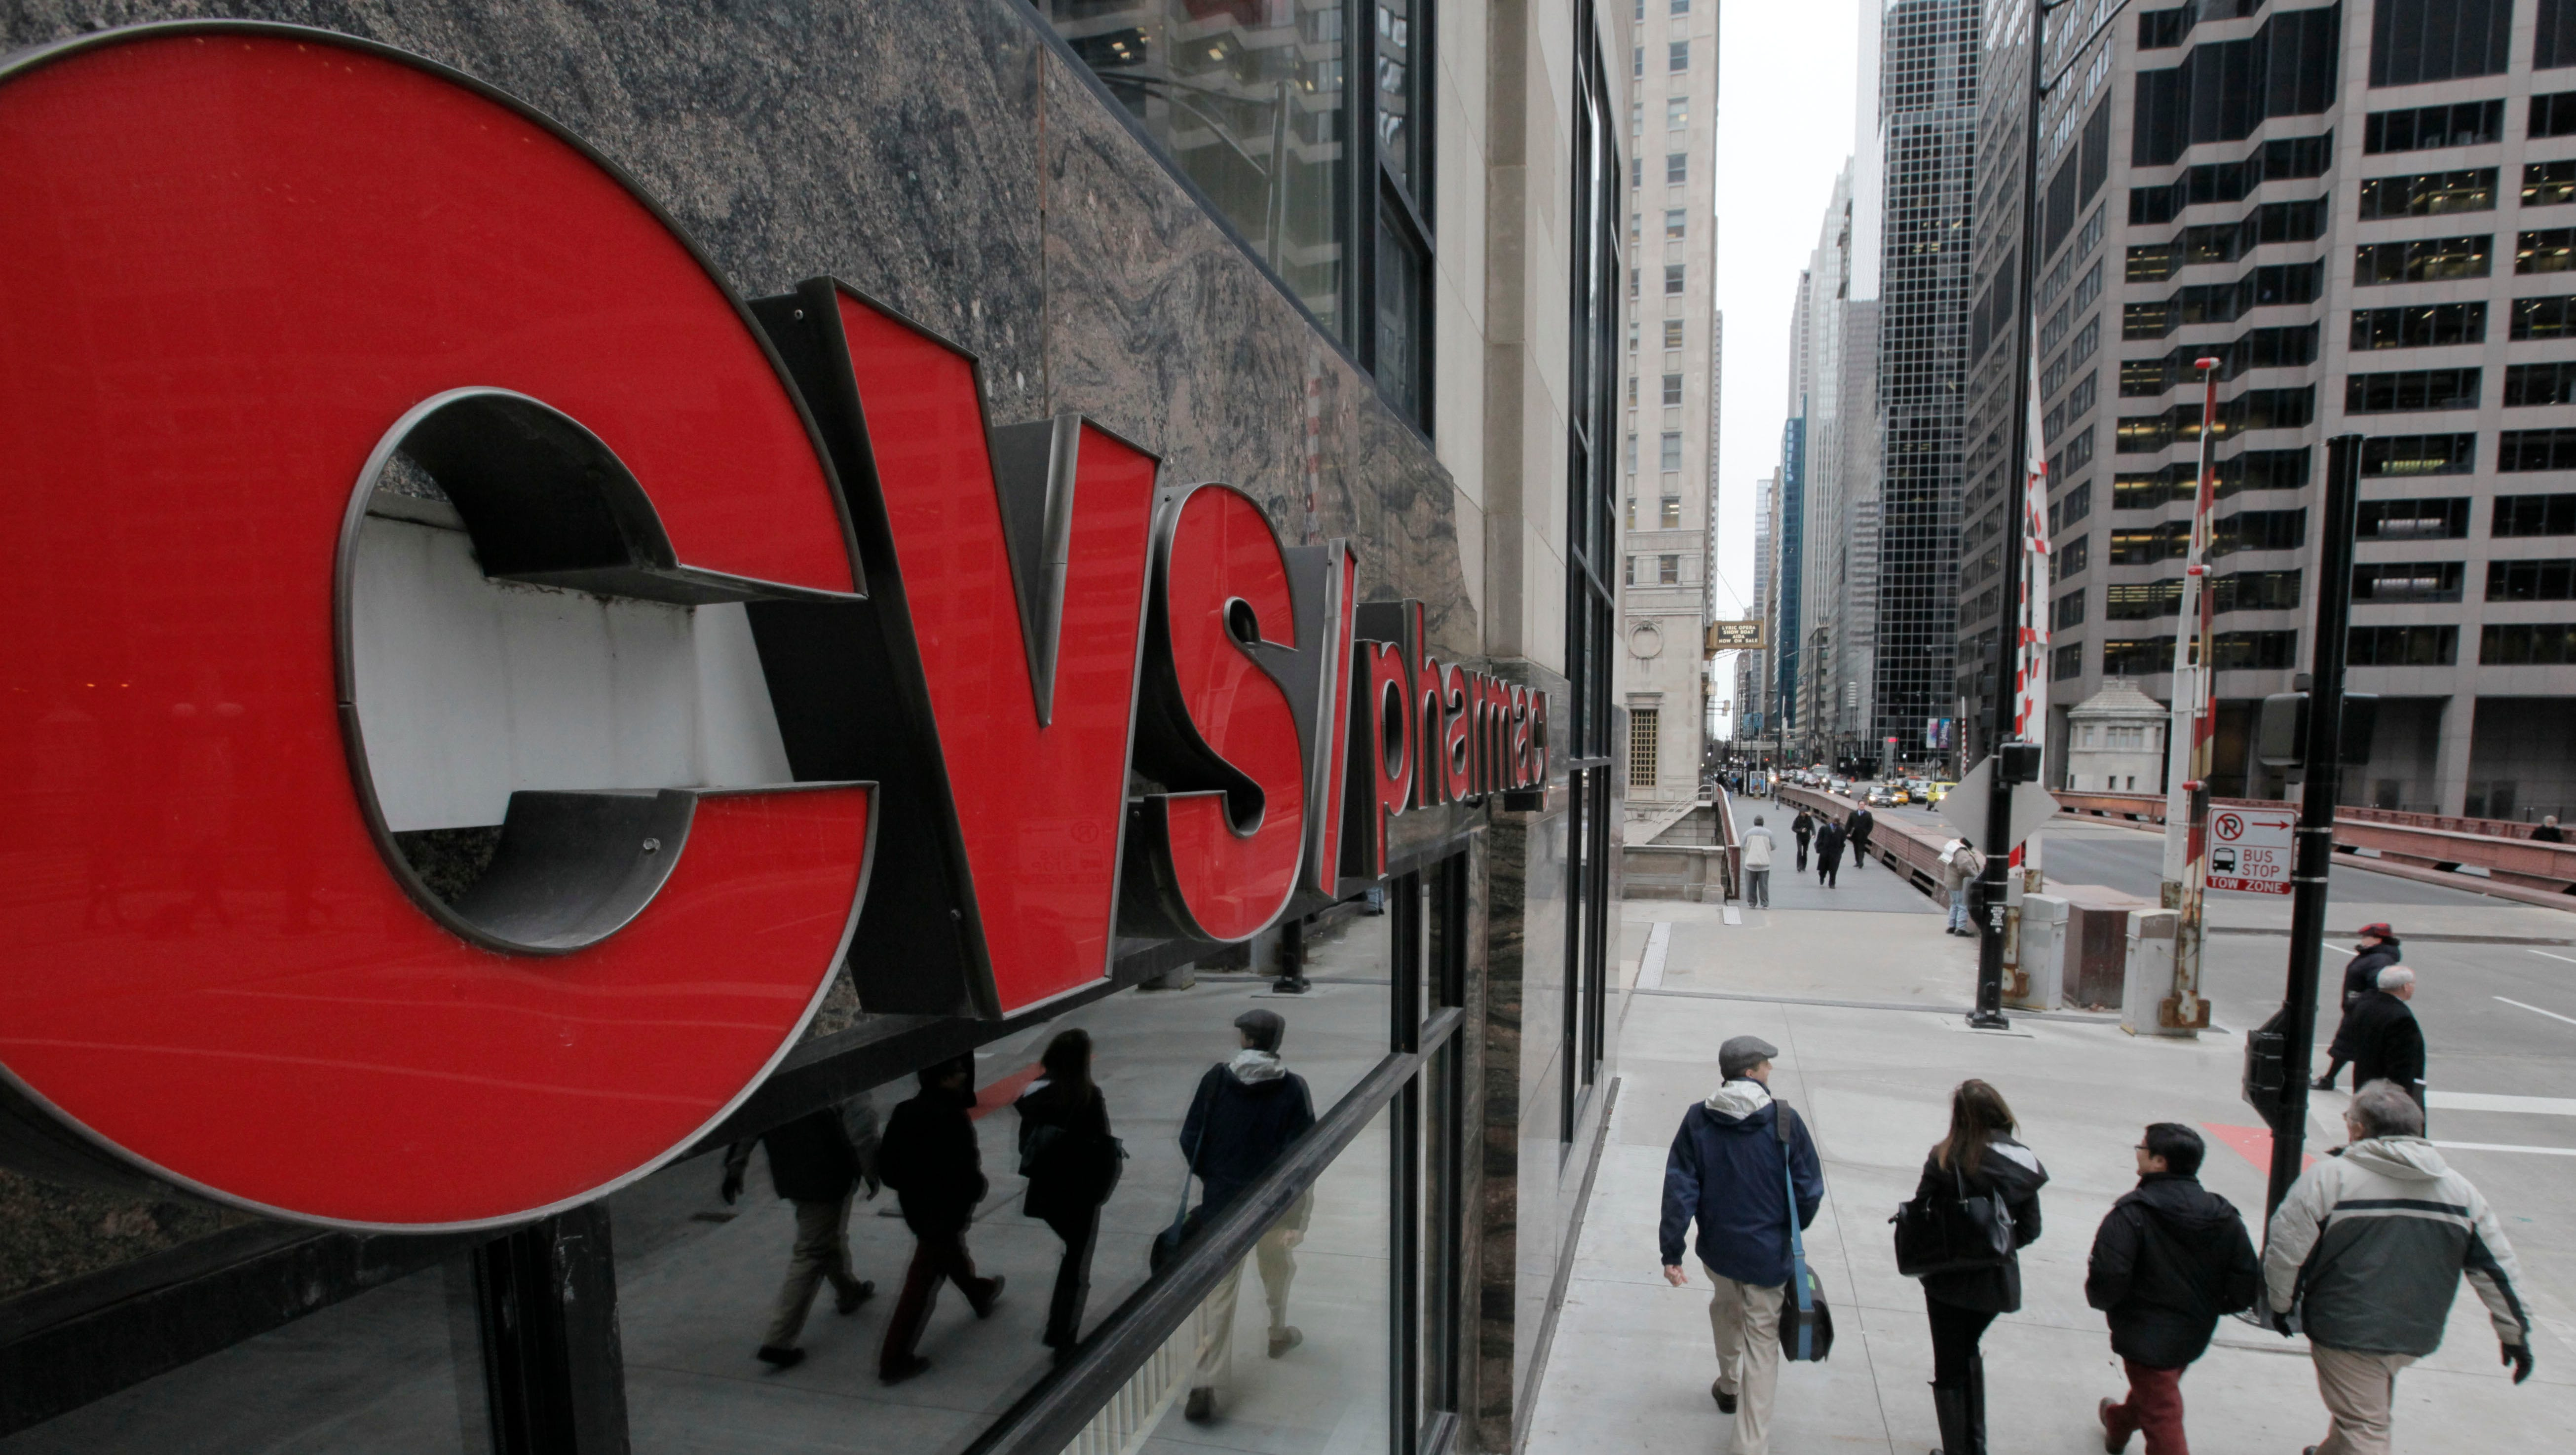 usatoday.com - Ashley May, USA TODAY - Black woman says CVS manager called police on her for 'fraudulent' coupon